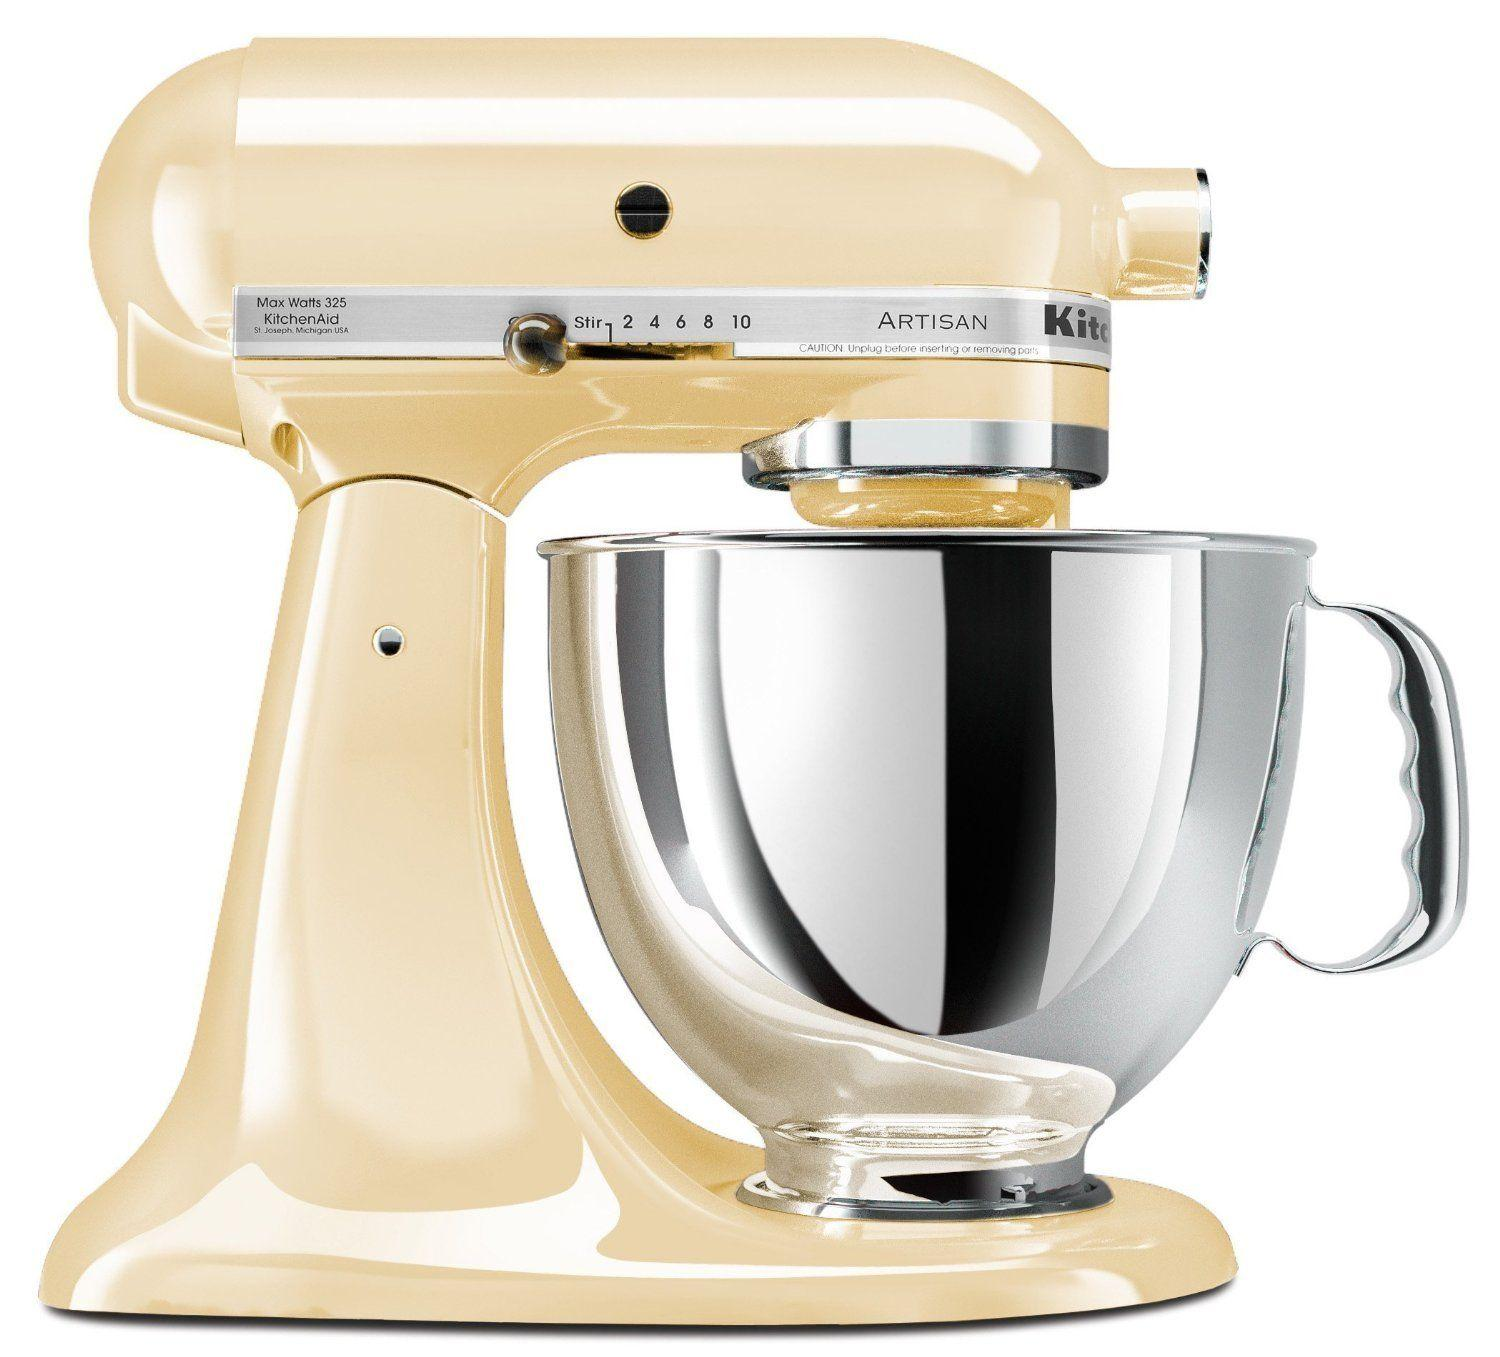 $184.99 KitchenAid KSM150PSSM Artisan 5 Qt. Stand Mixer (Manufacturer refurbished)